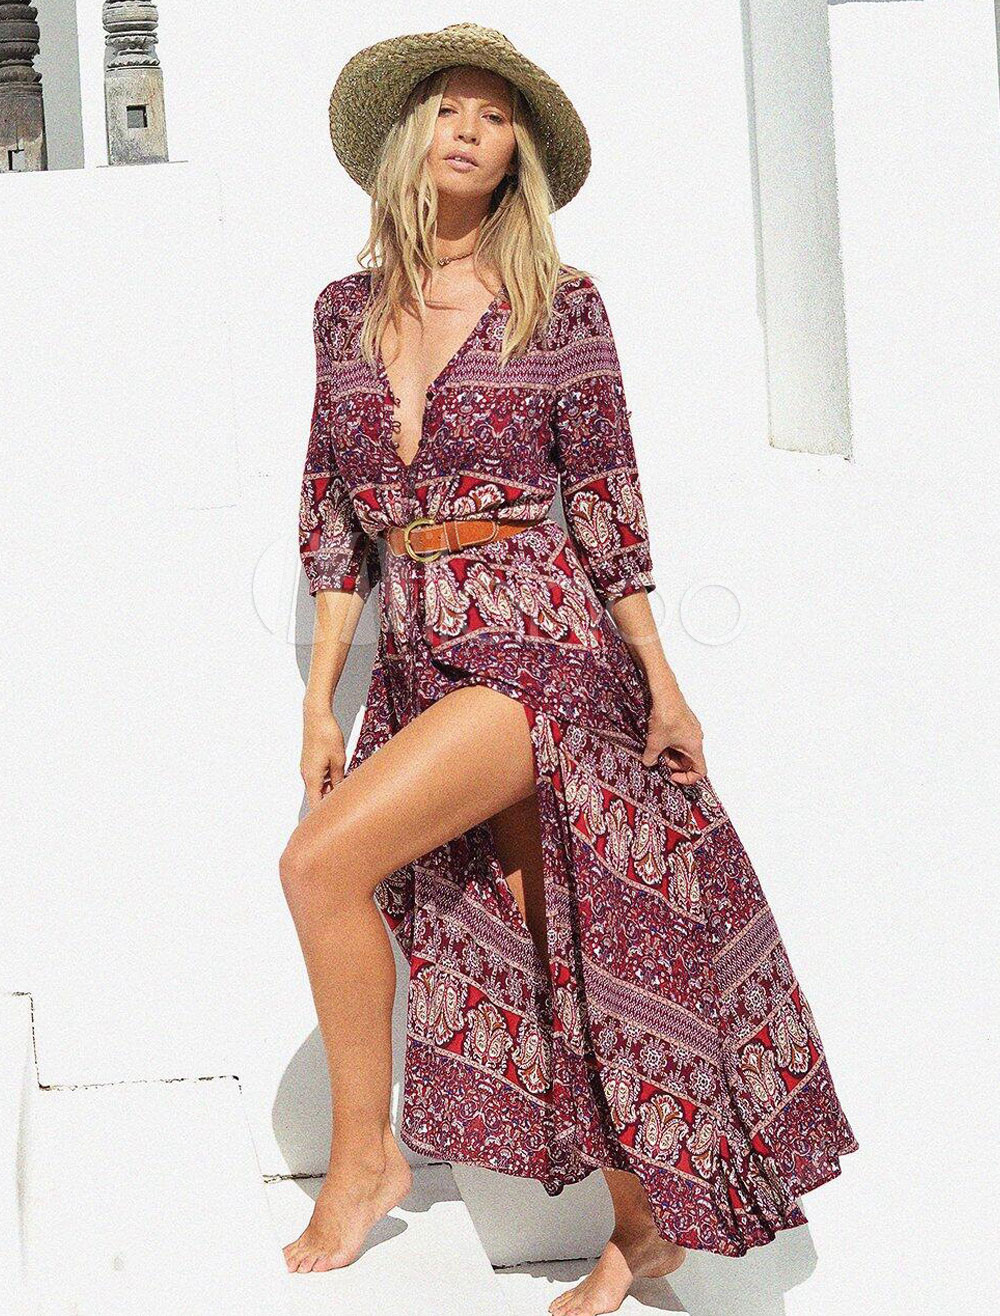 5d0872d48a ... Women Maxi Dresses Boho V Neck Half Sleeve Burgundy Printed Long Dress-No.4.  1. 40%OFF. Color:Burgundy